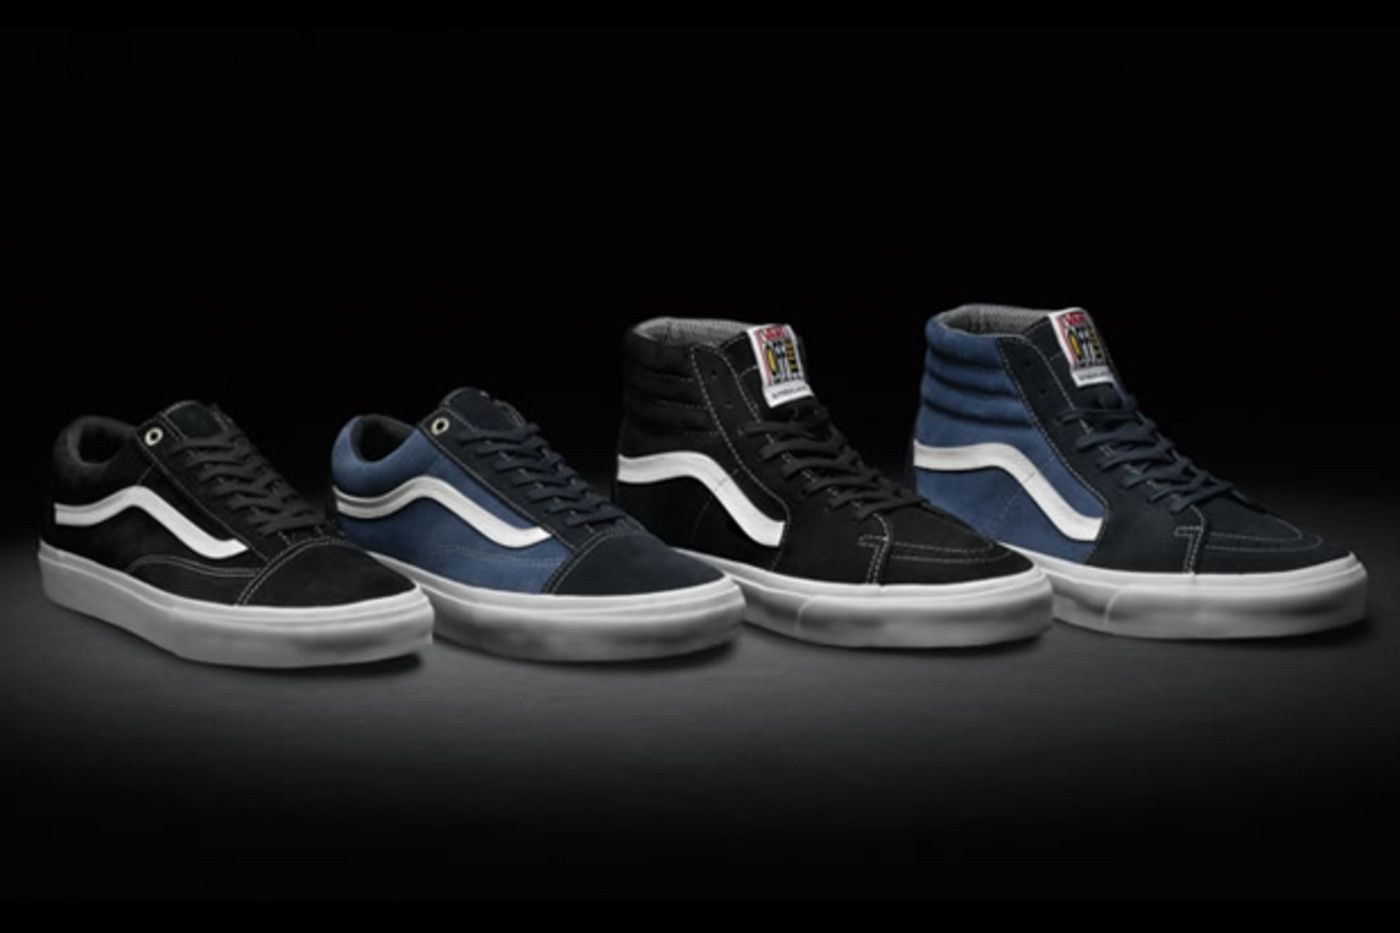 vans syndicate line